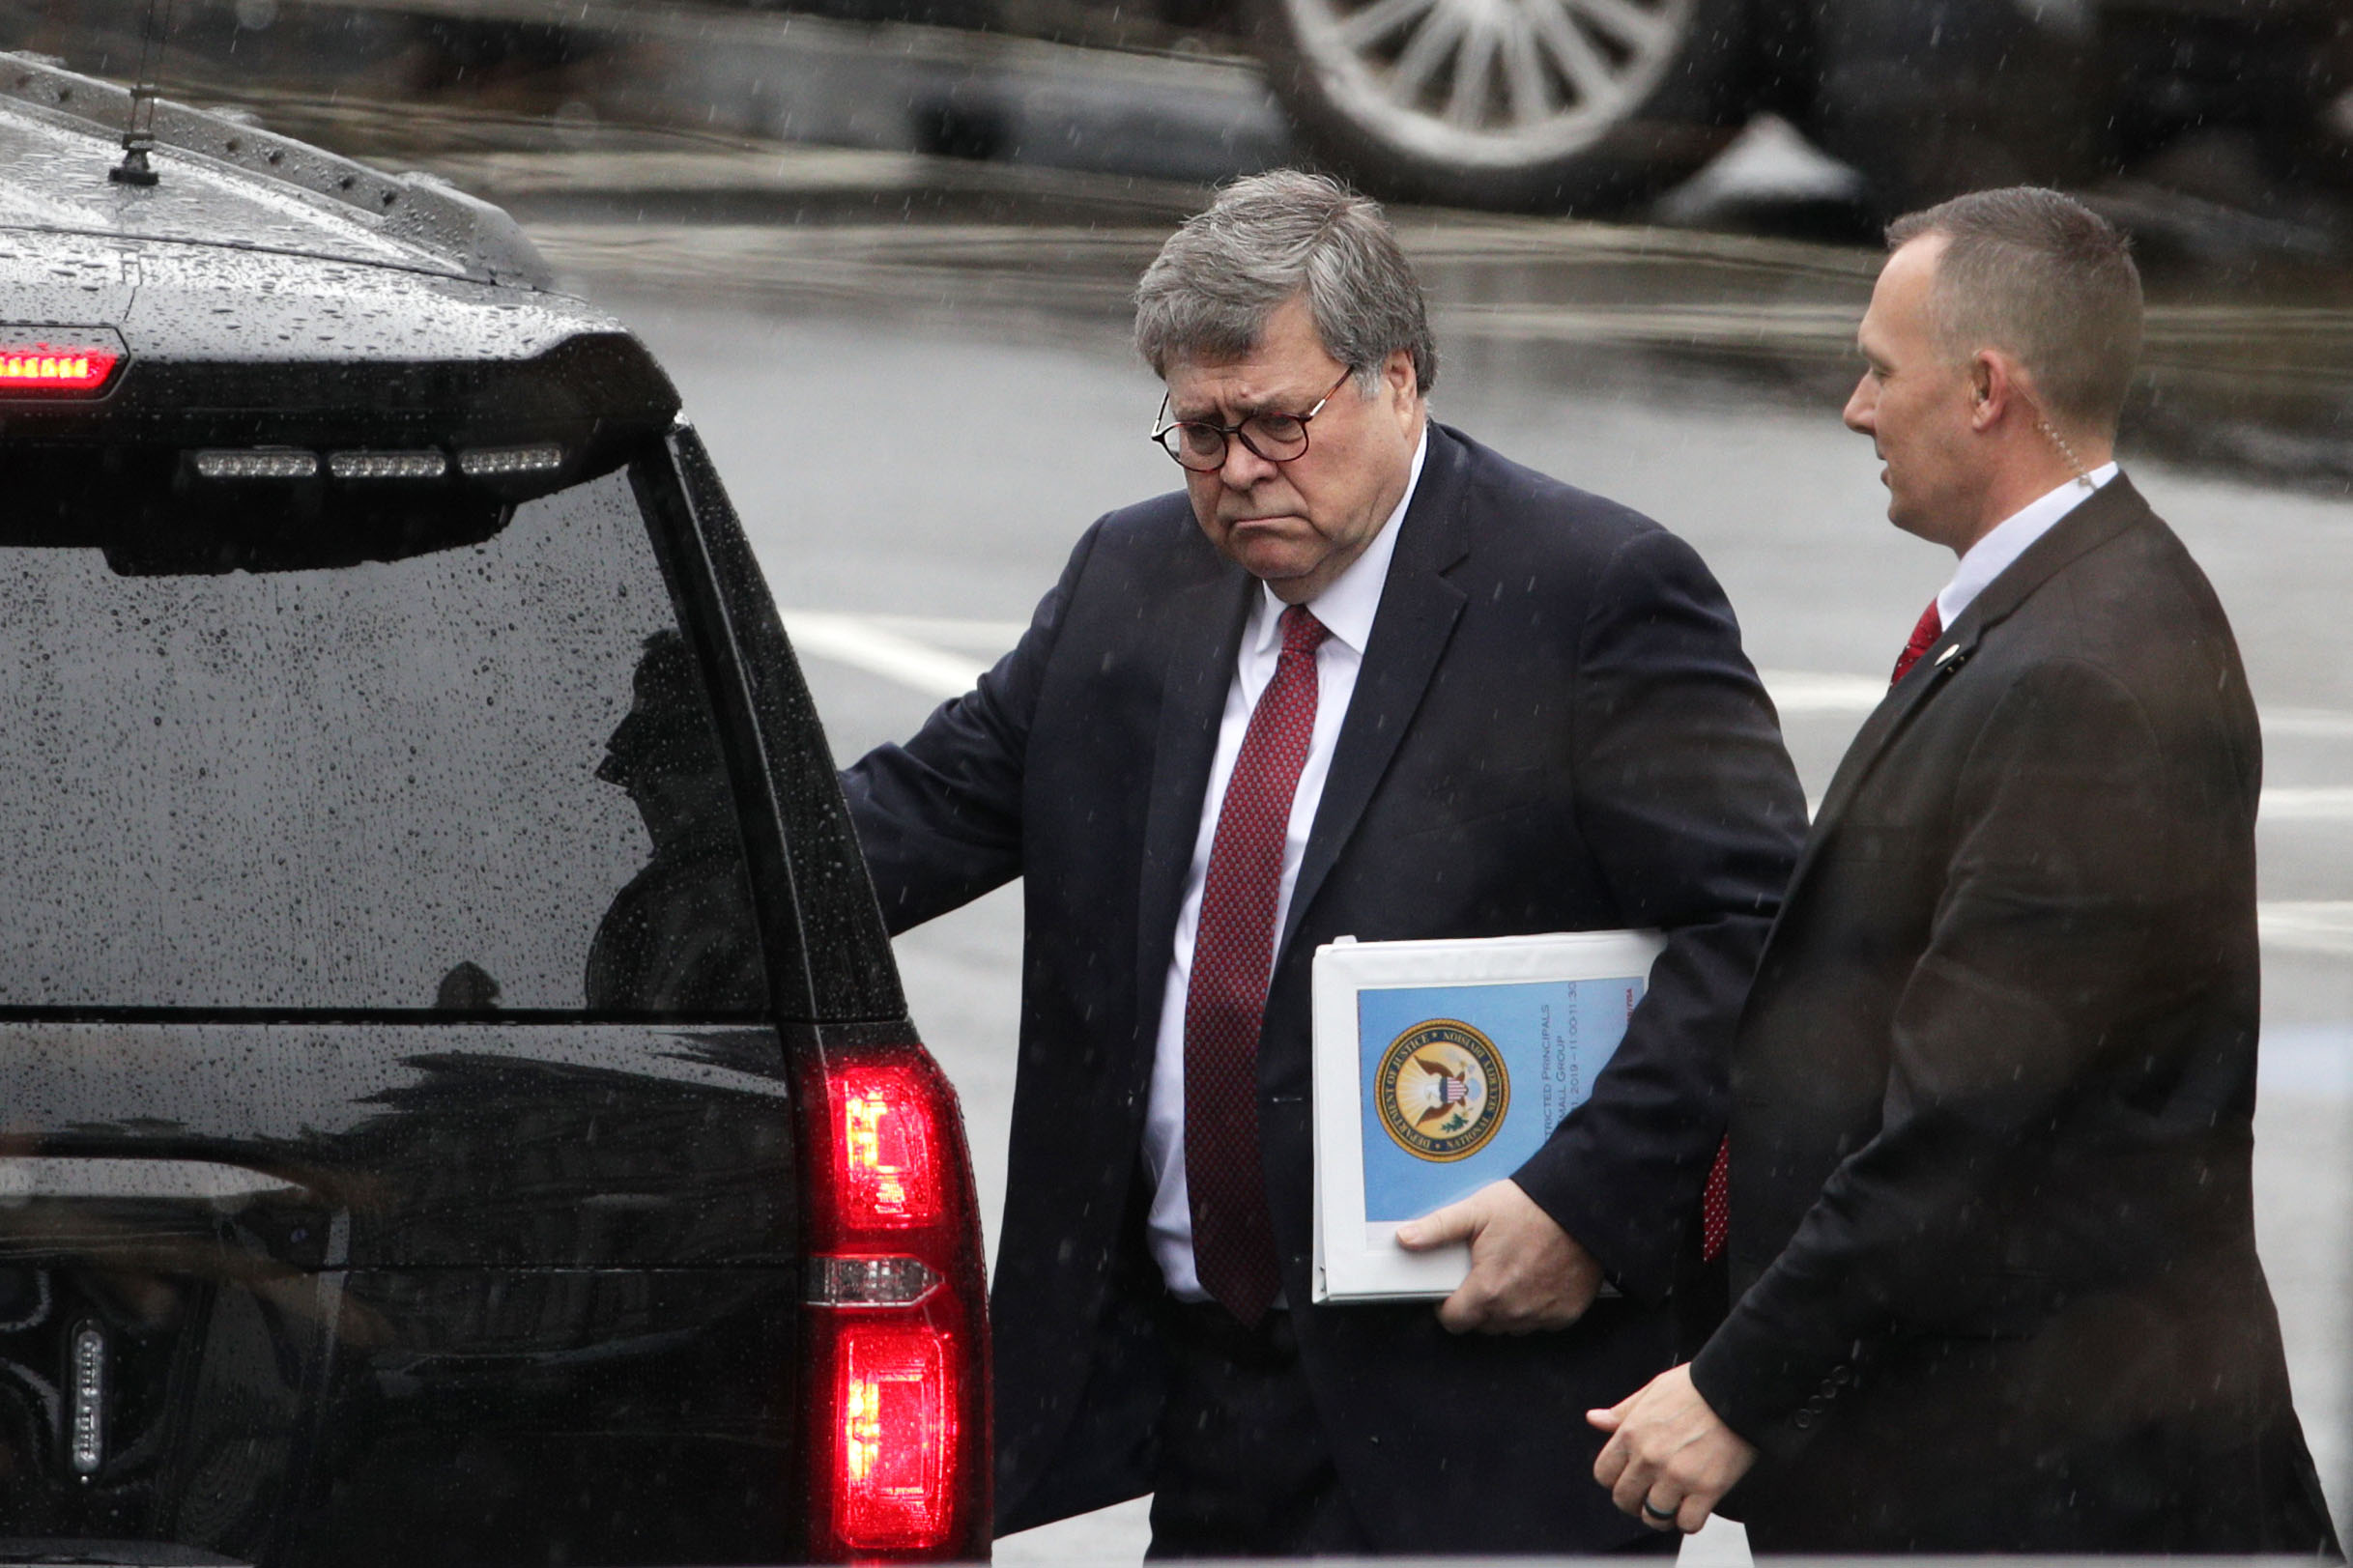 U.S. Attorney General William Barr (L) leaves after a meeting at the West Wing of the White House March 21, 2019, in Washington, DC. Key law-enforcement officials in Washington are preparing for the release of the report by special counsel Robert Mueller. (Getty Images)